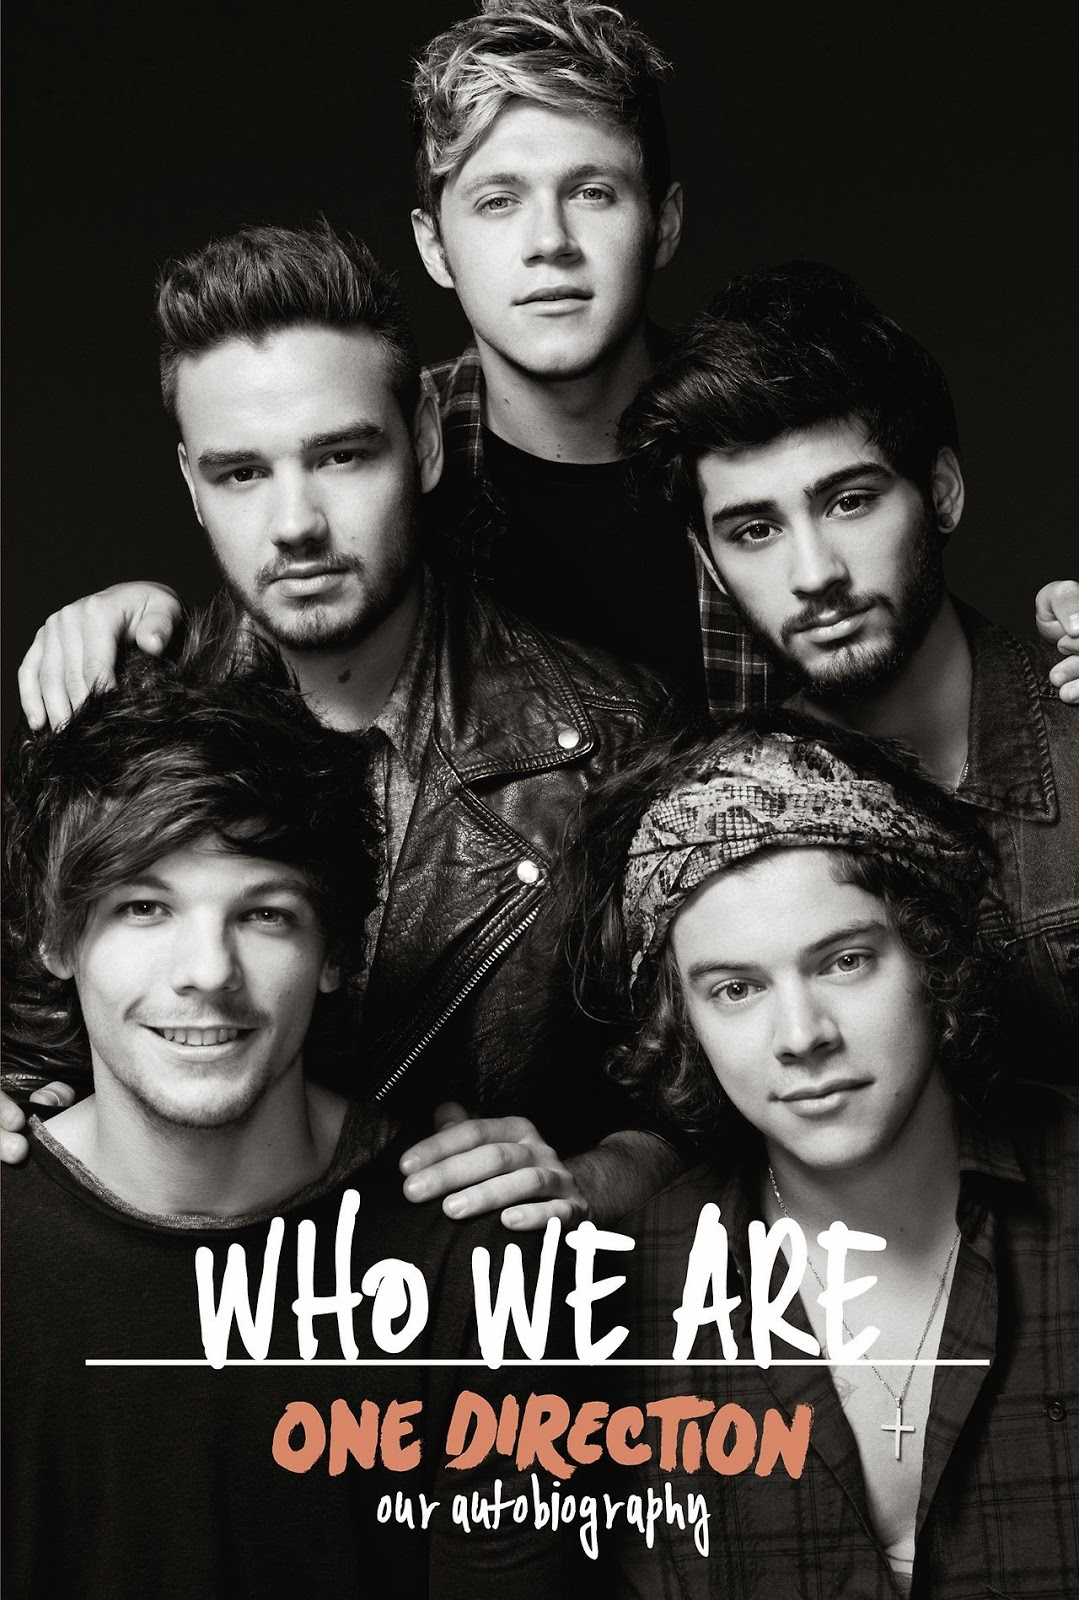 One Direction: 'Who We Are' book cover.